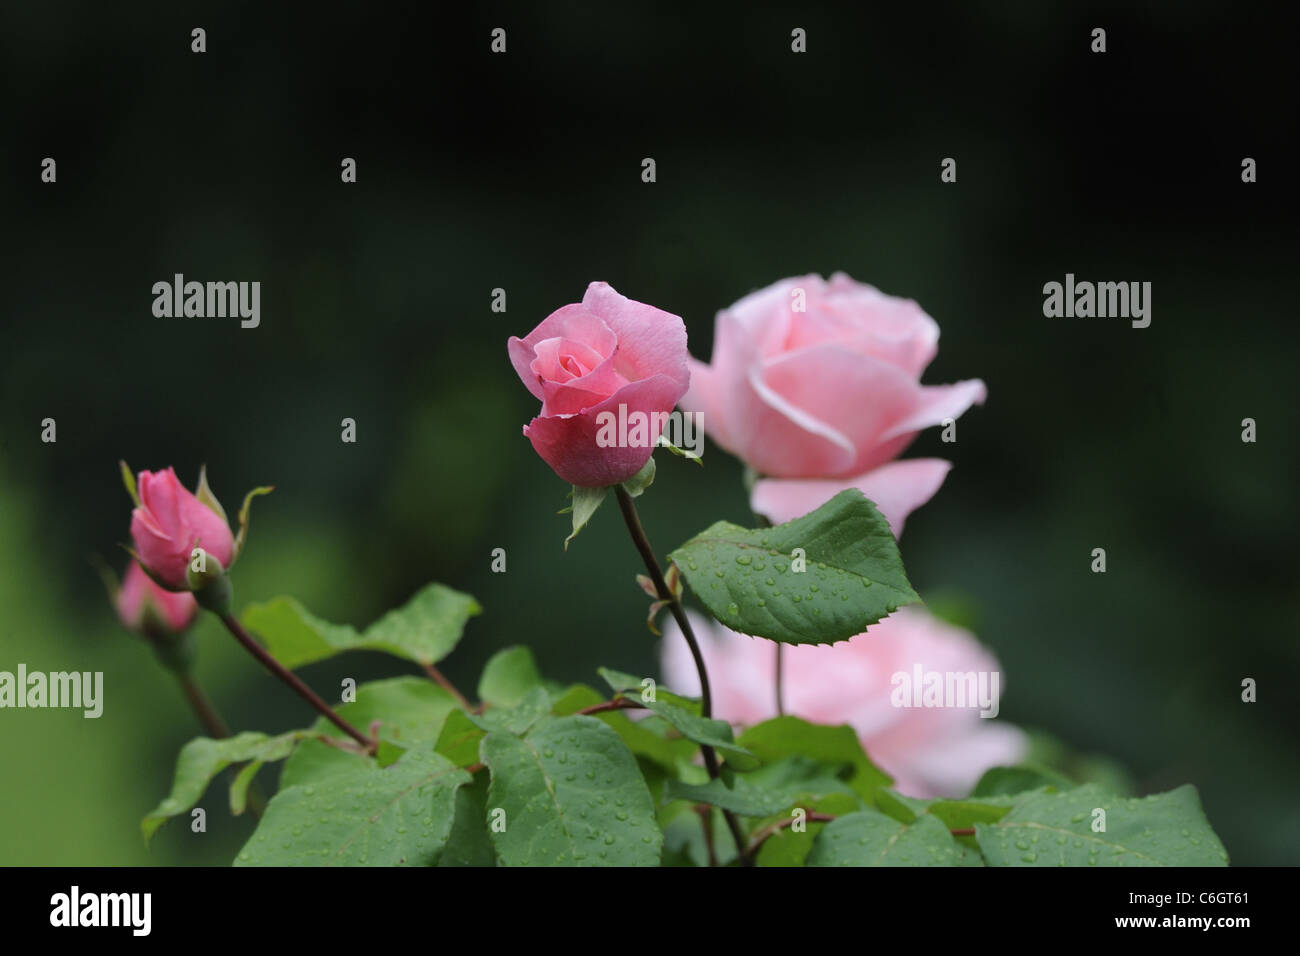 rose bush stock photos rose bush stock images alamy. Black Bedroom Furniture Sets. Home Design Ideas